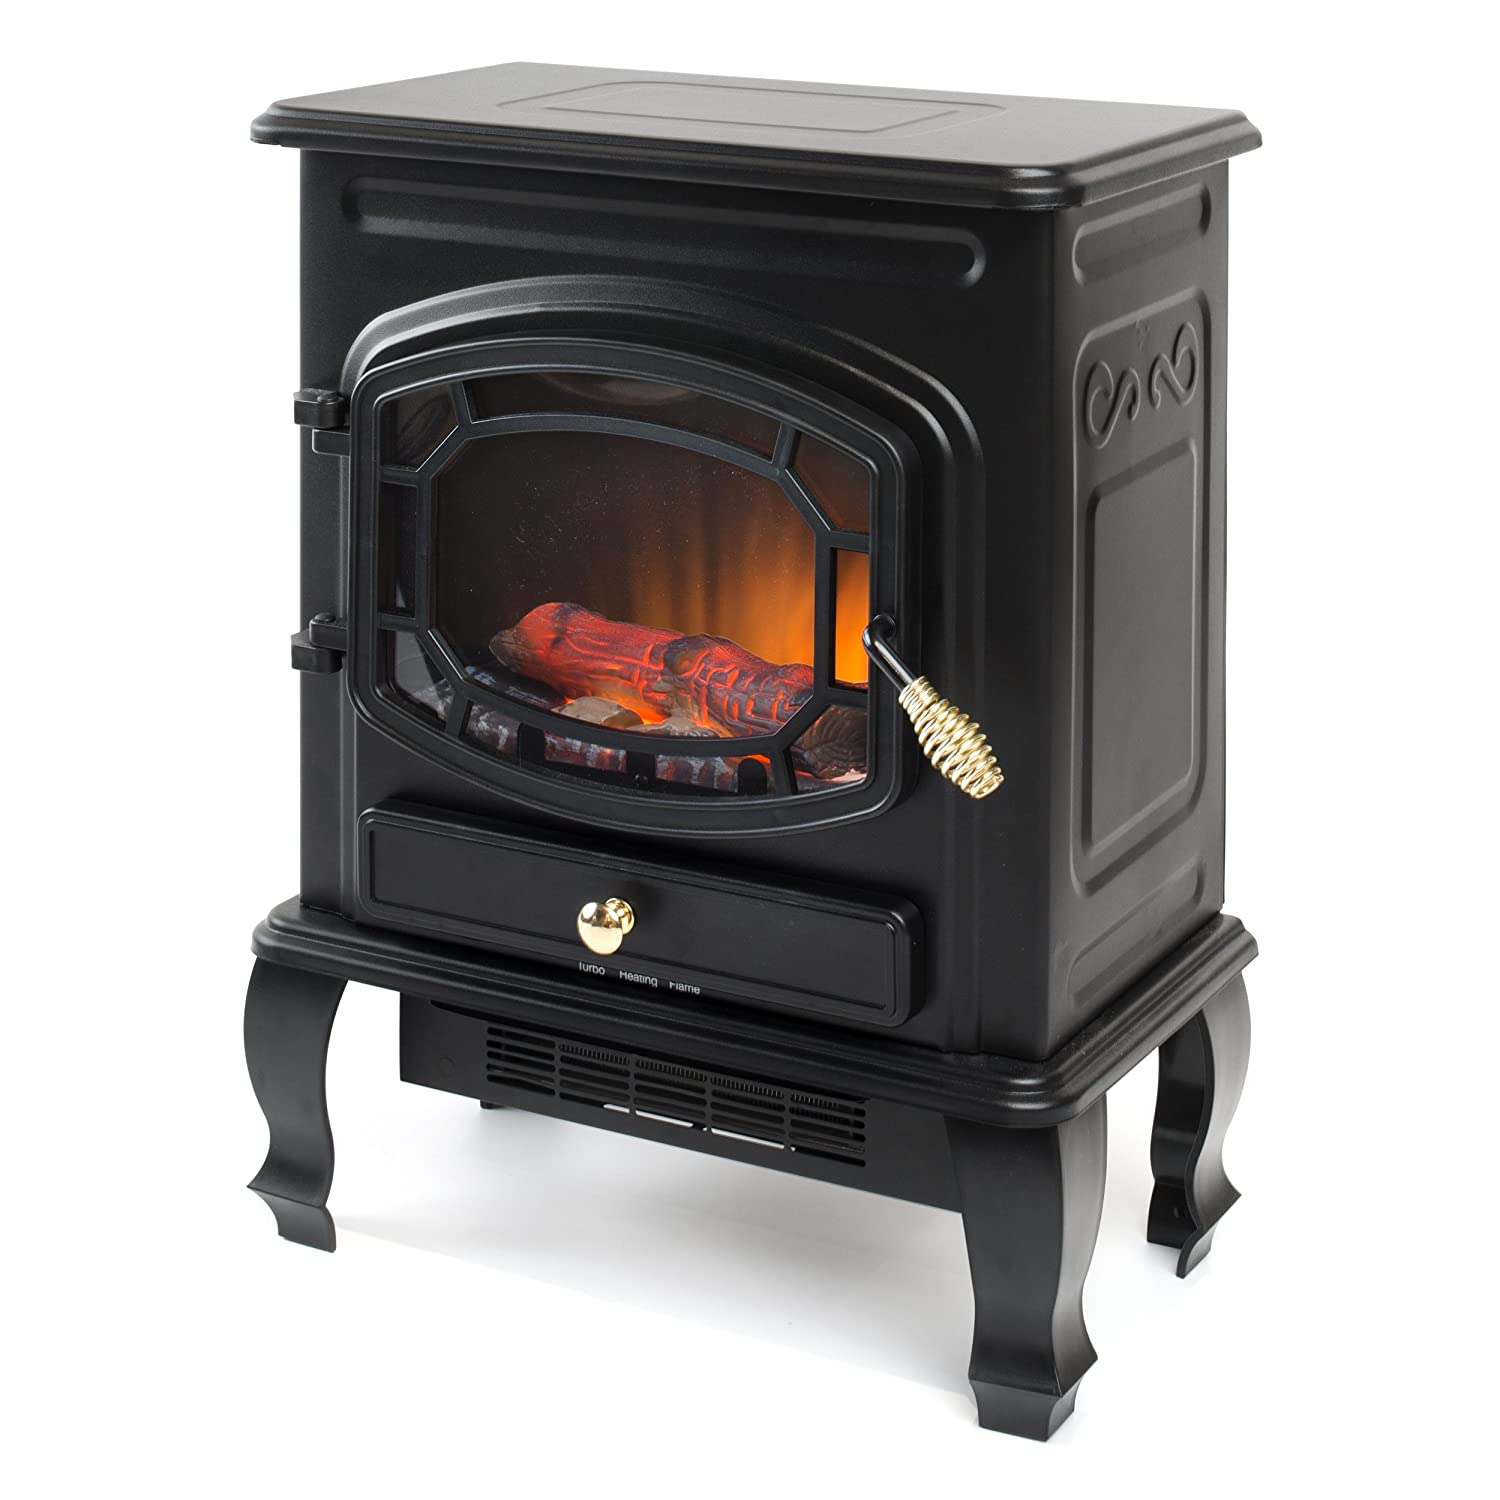 Garibaldi Heating 1500W 23-Inch Electric Stove Heater, Black - Portable & Electric Fireplaces Amazon.com